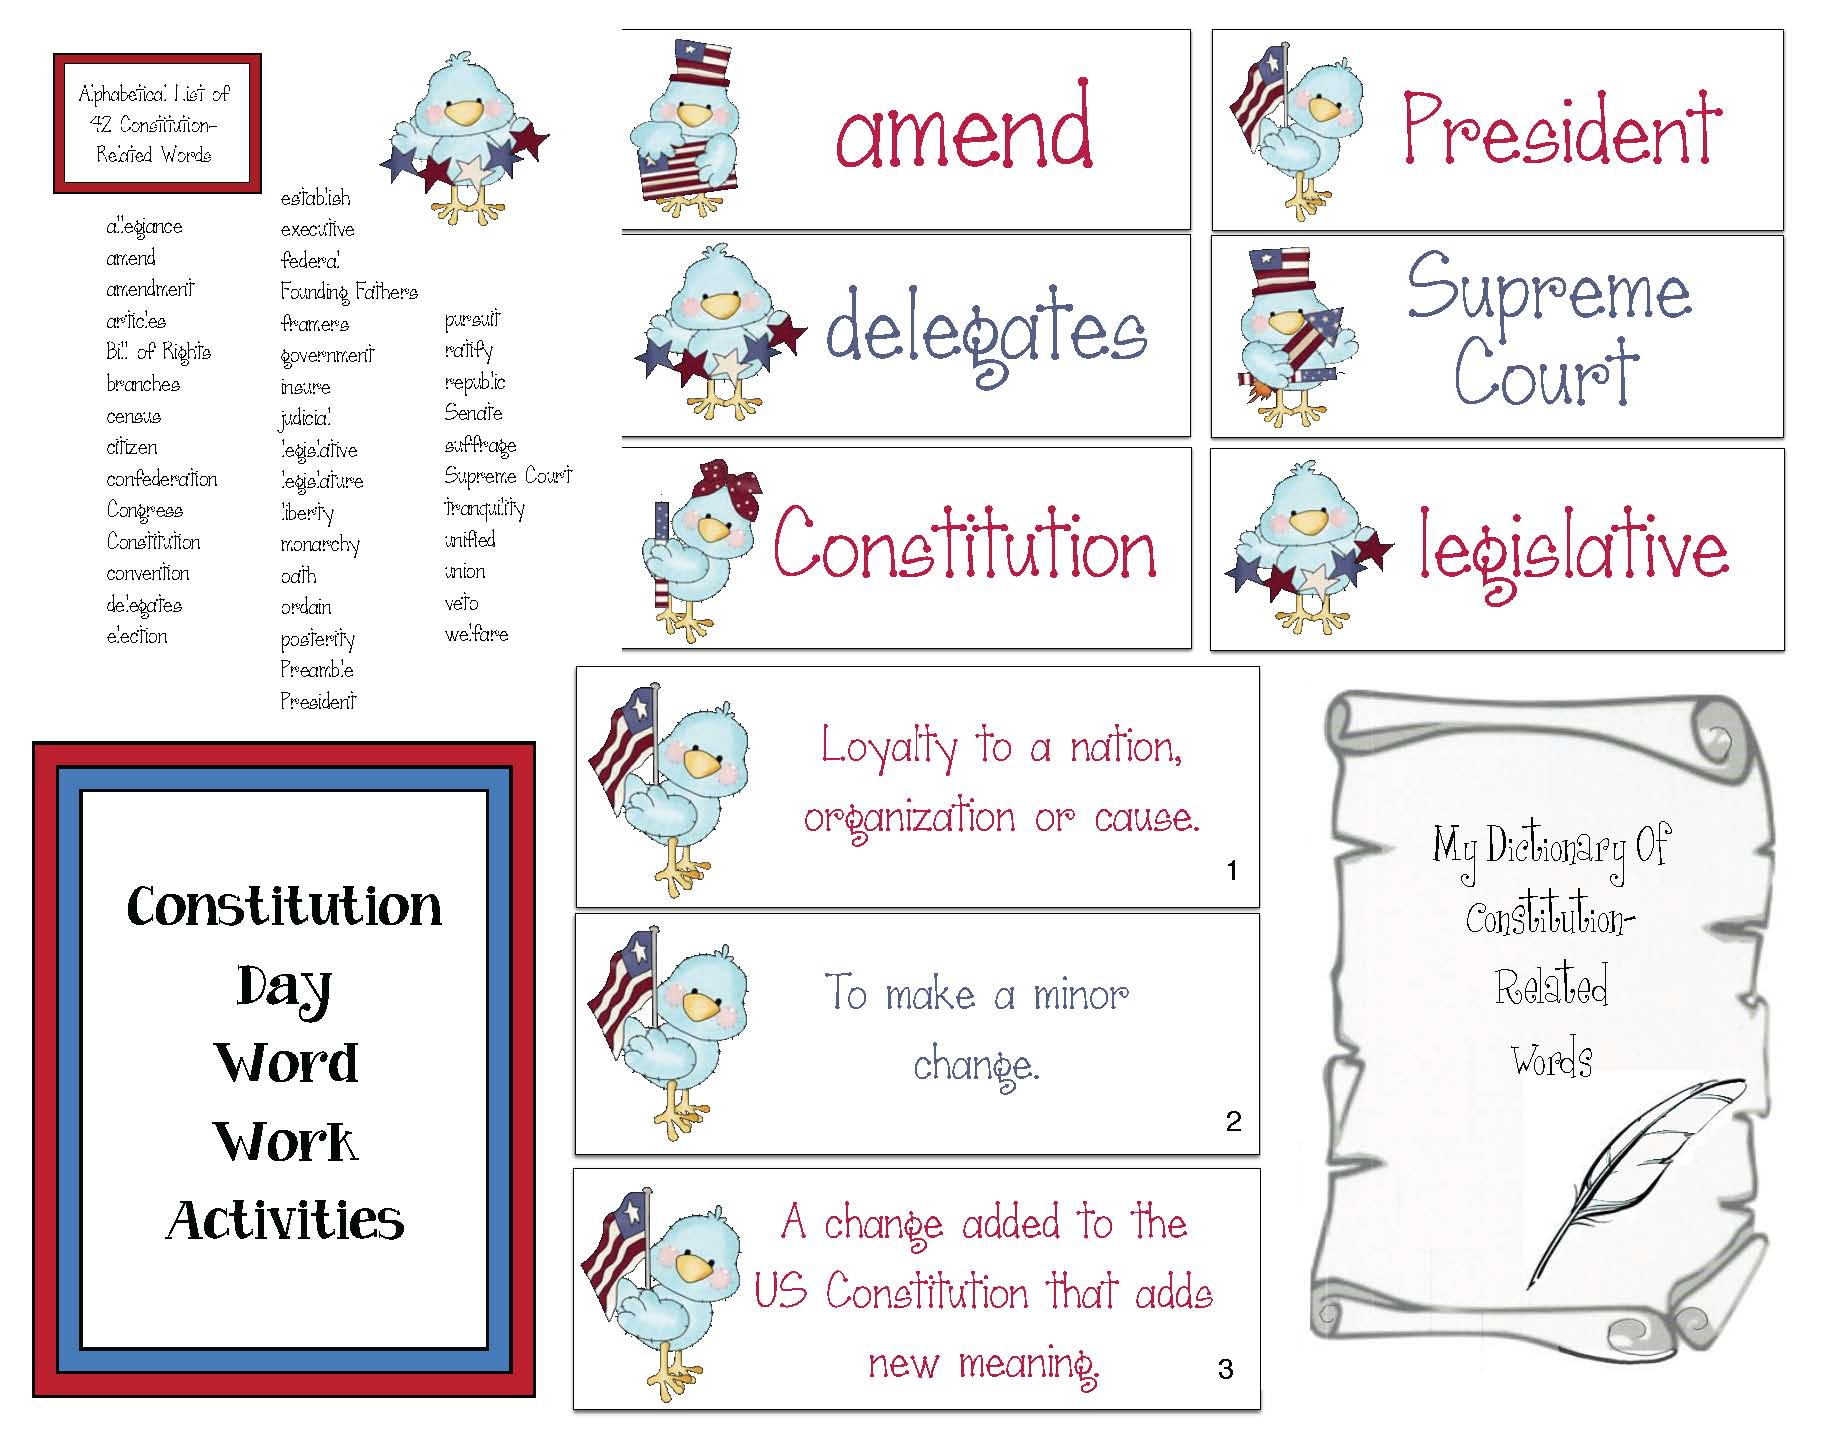 42 constitution vocabulary words, constitution day activities, constitution day lessons, constitution day ideas, vocabulry building activities, alphabetizing words activities